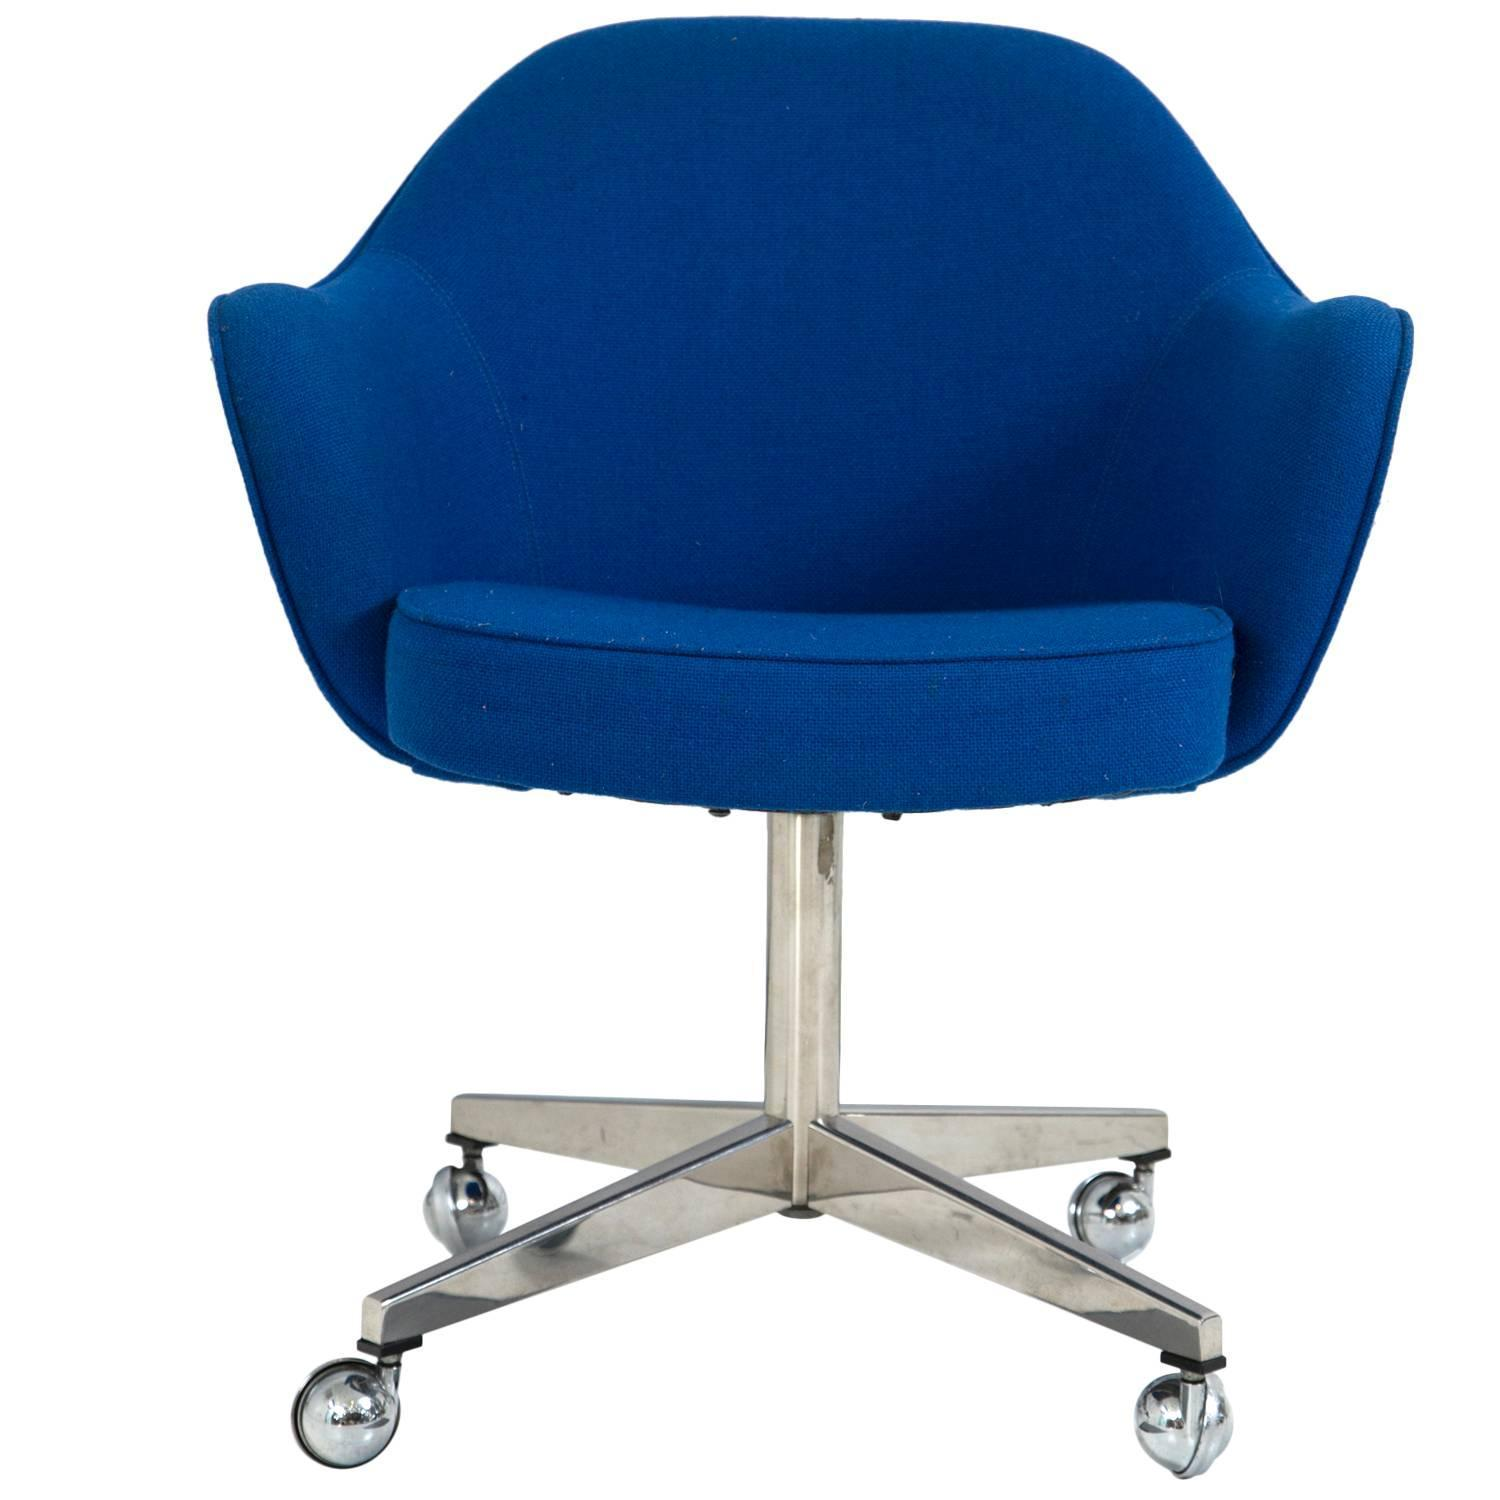 knoll desk chair in vintage knoll blue at 1stdibs